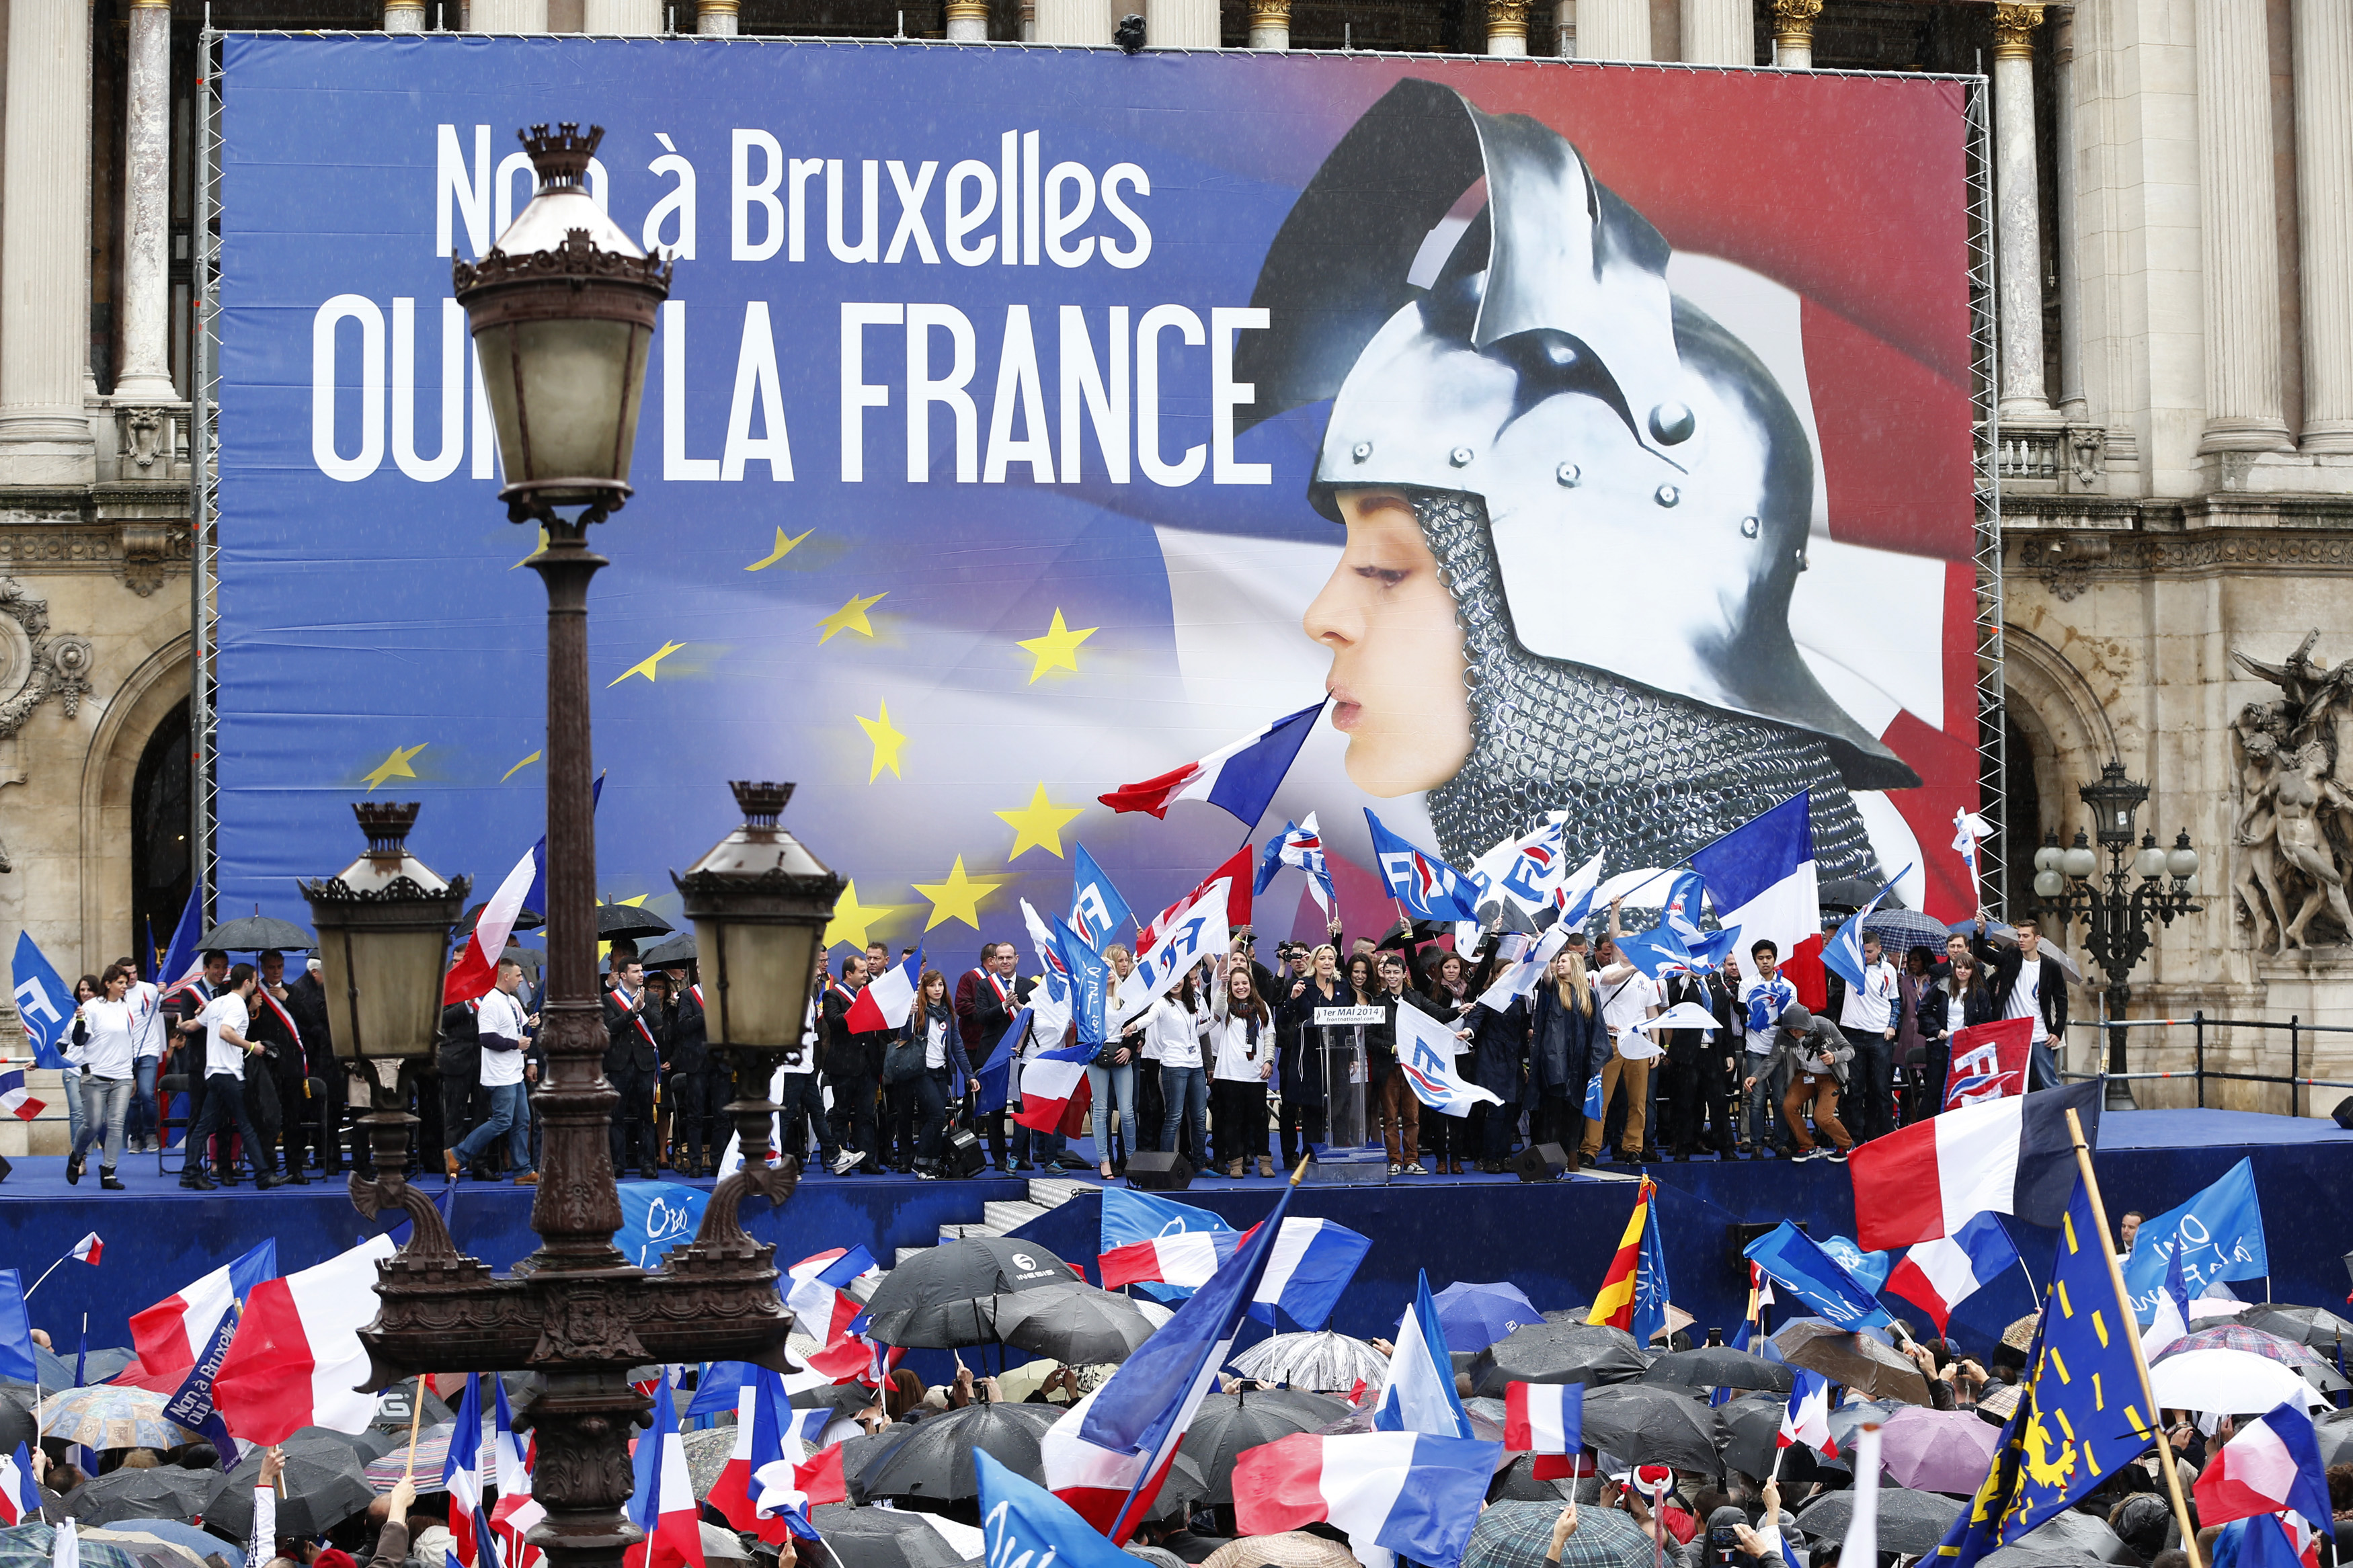 1 May 2014 rally in Paris of Front National. Photo Reuters